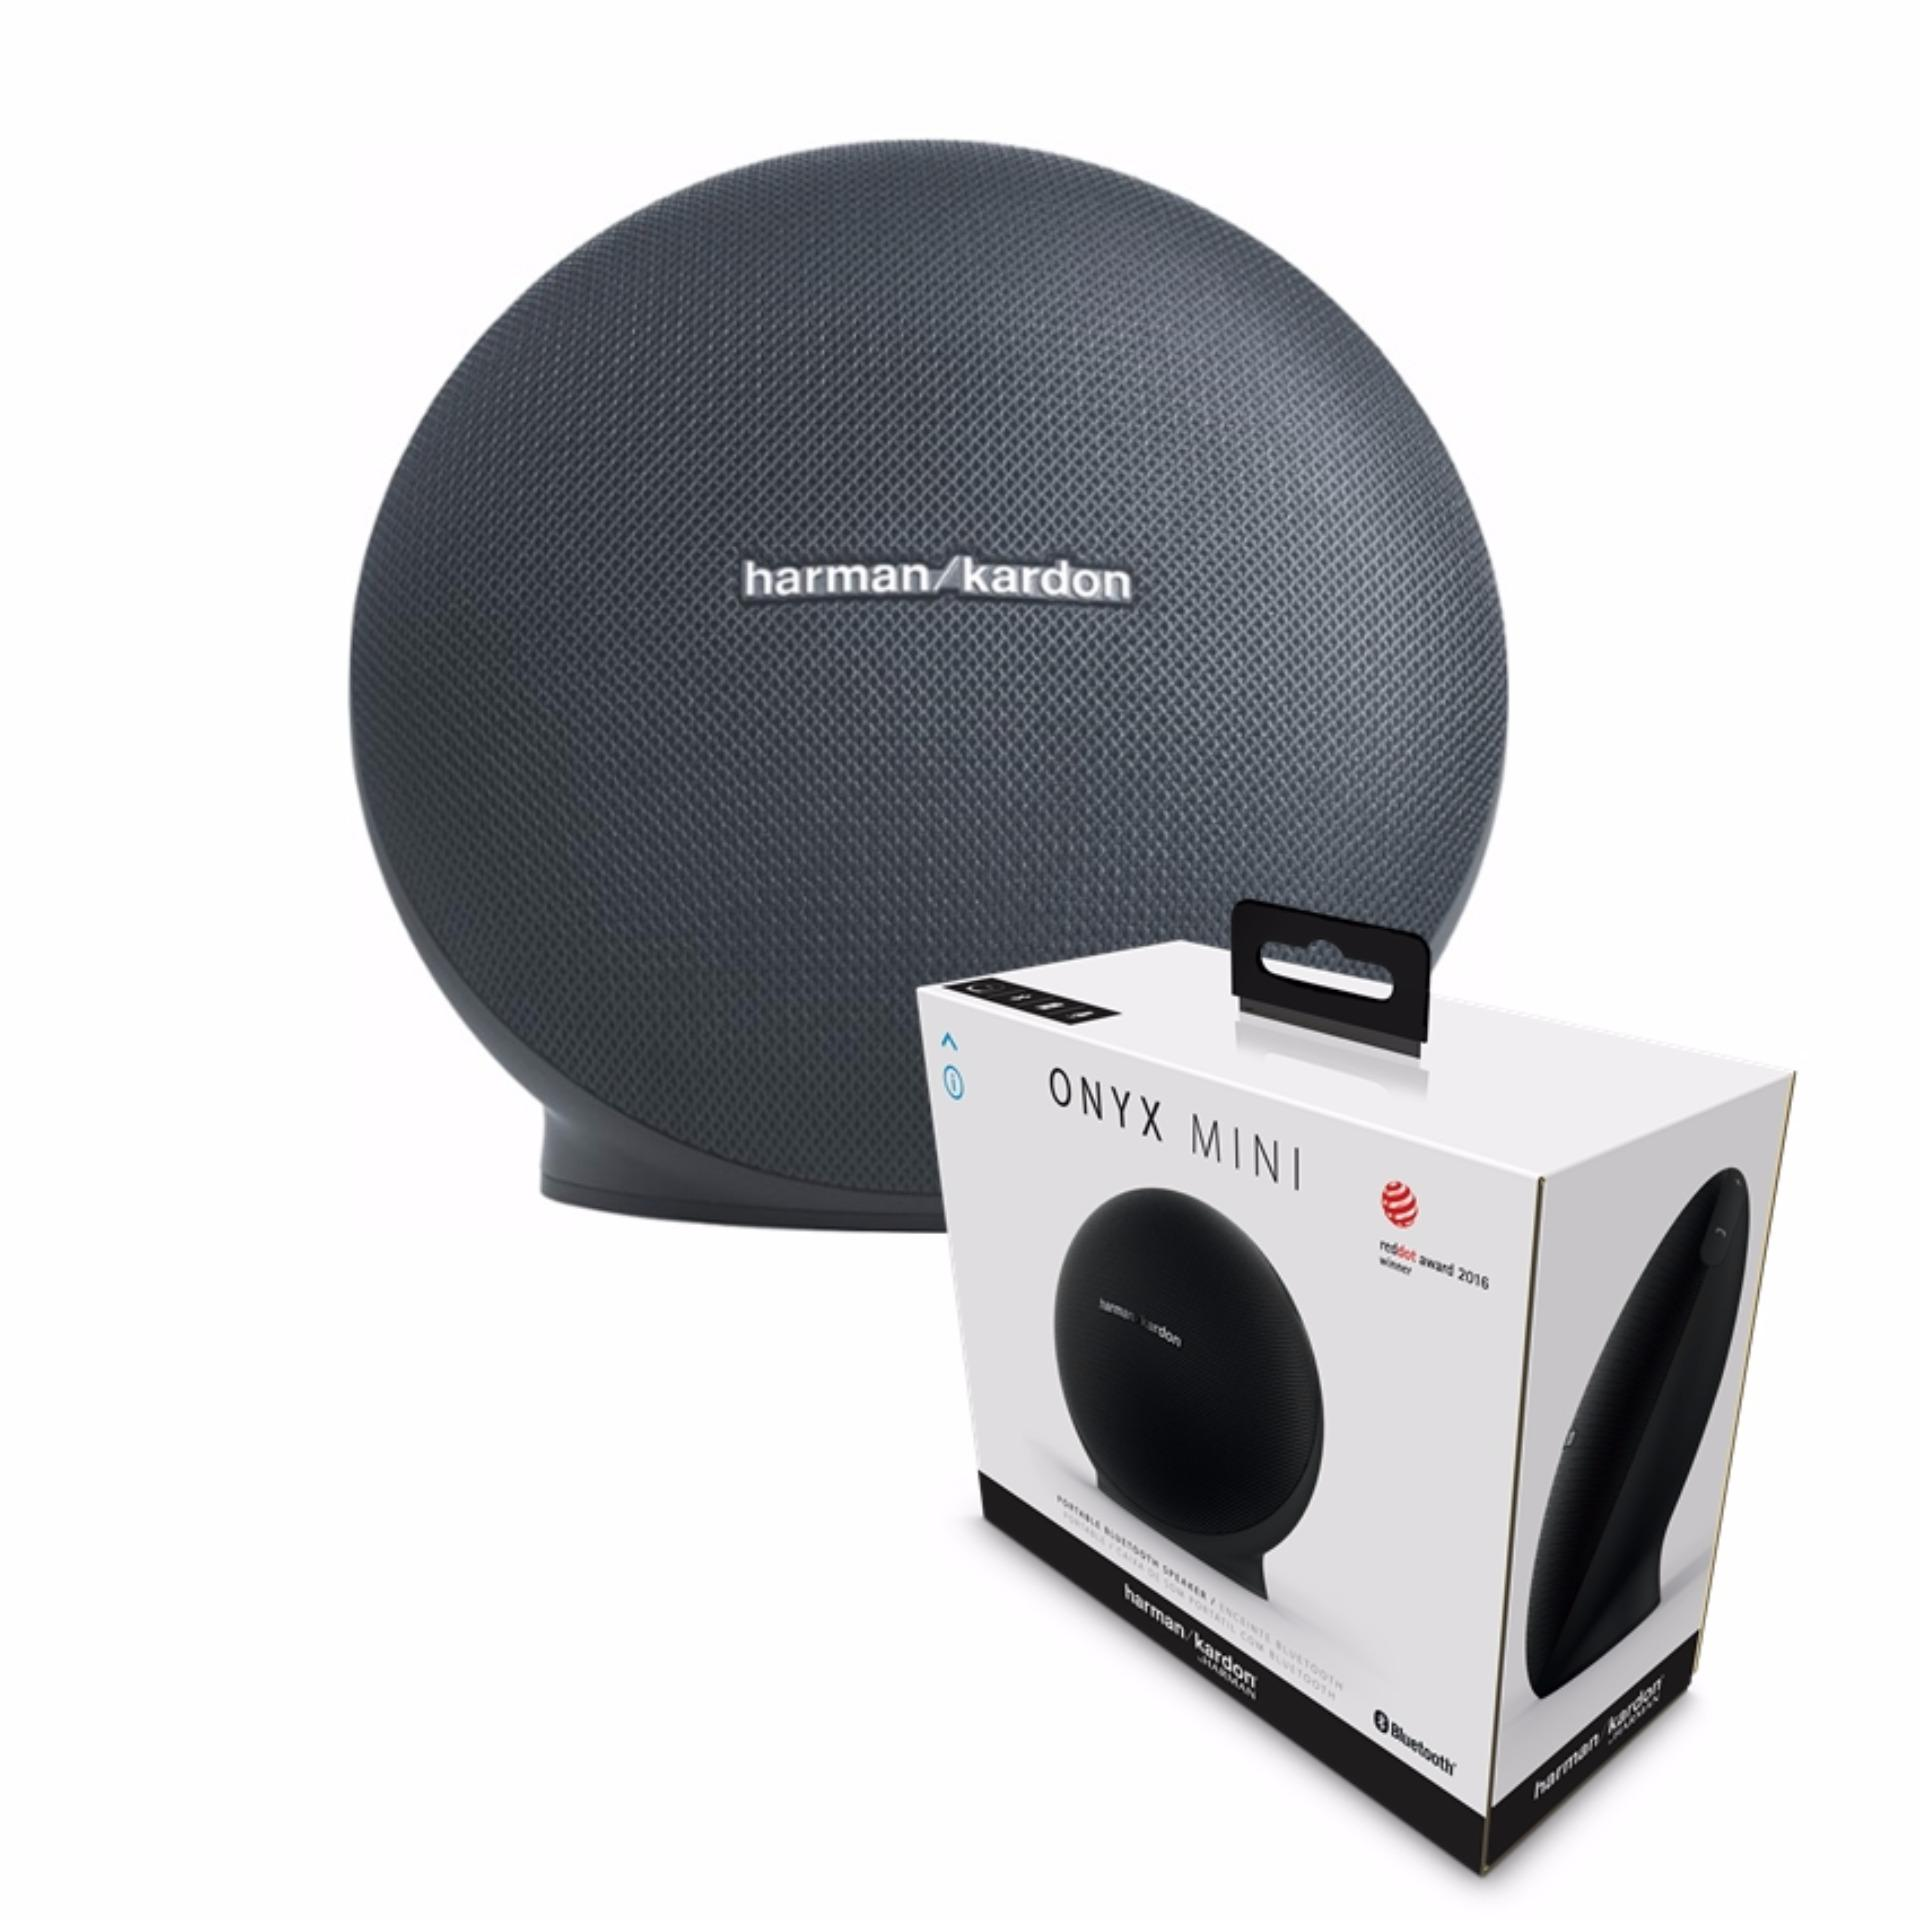 Penawaran Istimewa Speaker Bluetooth Onyx Mini Portable By Harman Kardon Hitam Terbaru